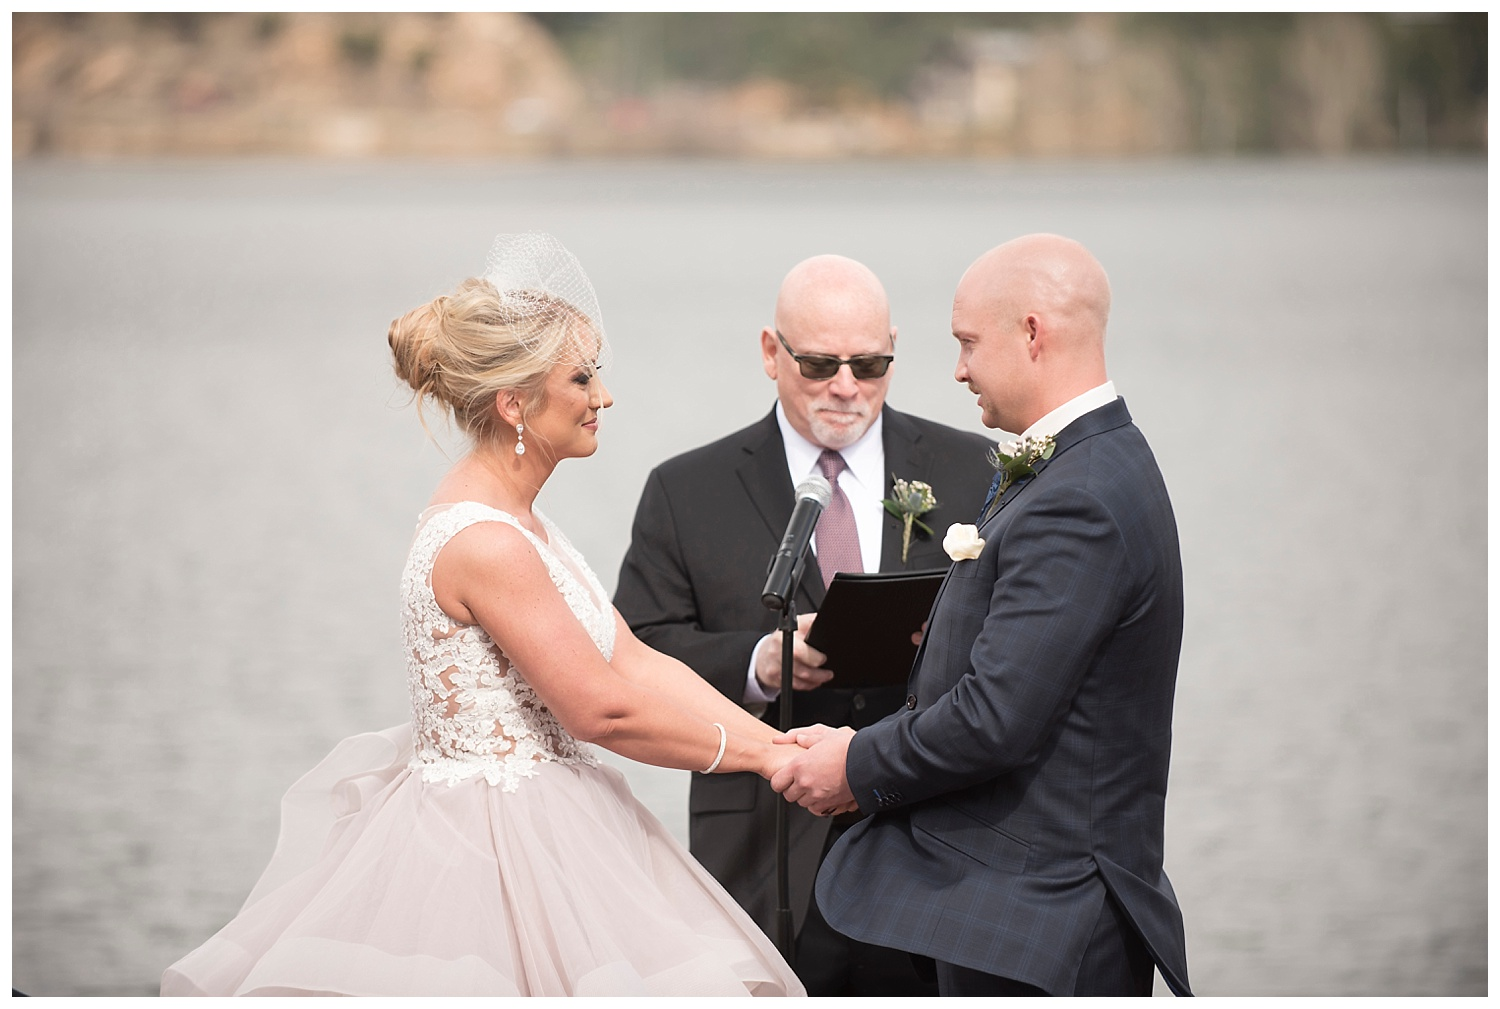 Evergreen_Lake_House_Colorado_Wedding_Photographer_Apollo_Fields_Photography_171.jpg